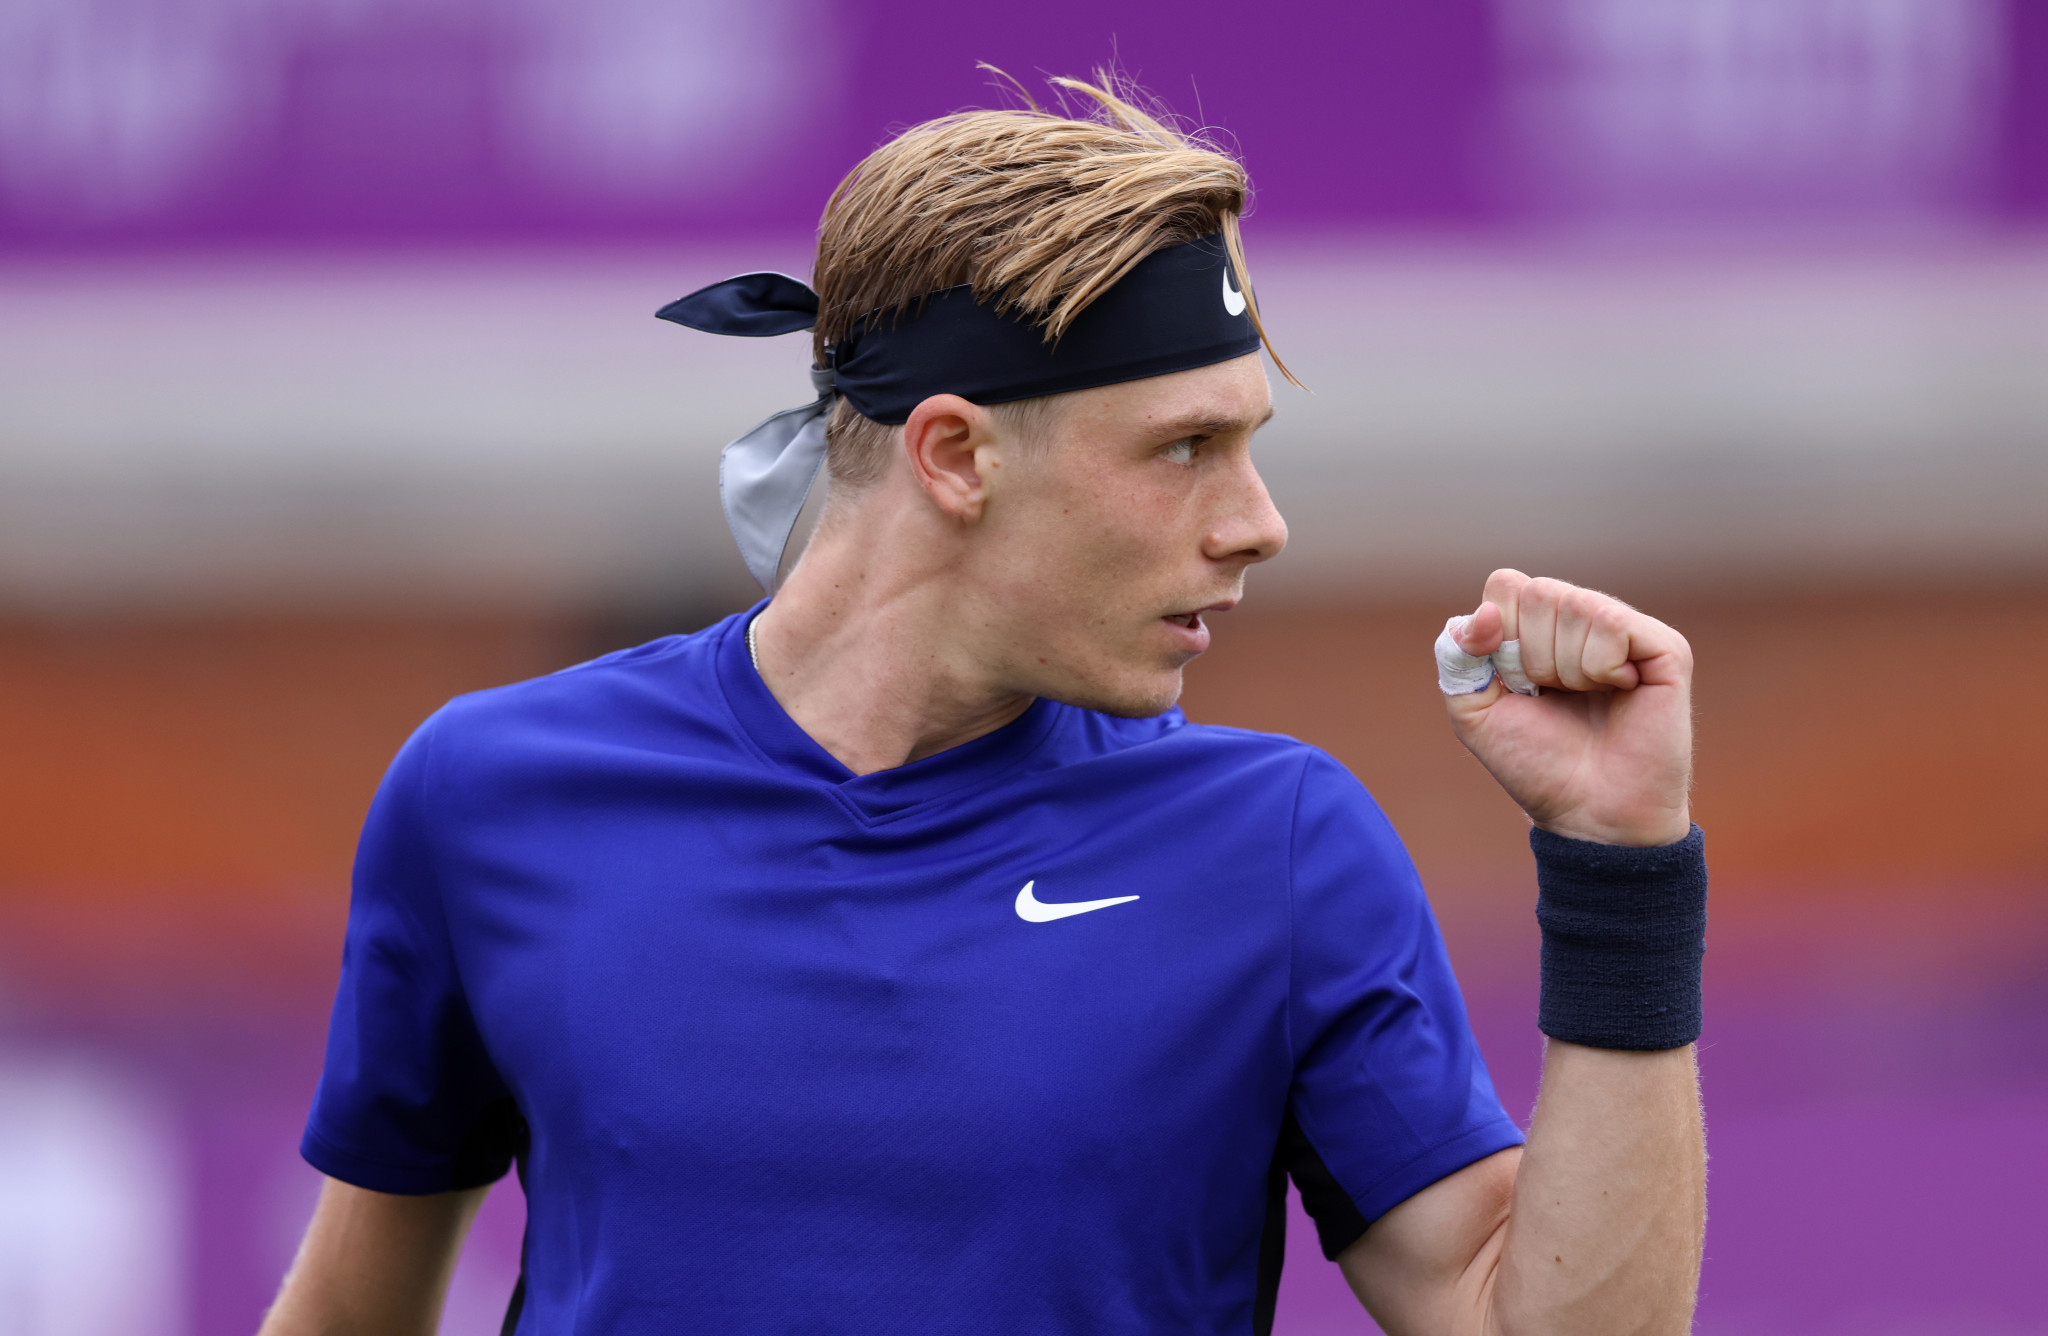 Denis Shapovalov has withdrawn from the Tokyo 2020 Olympics ©Getty Images